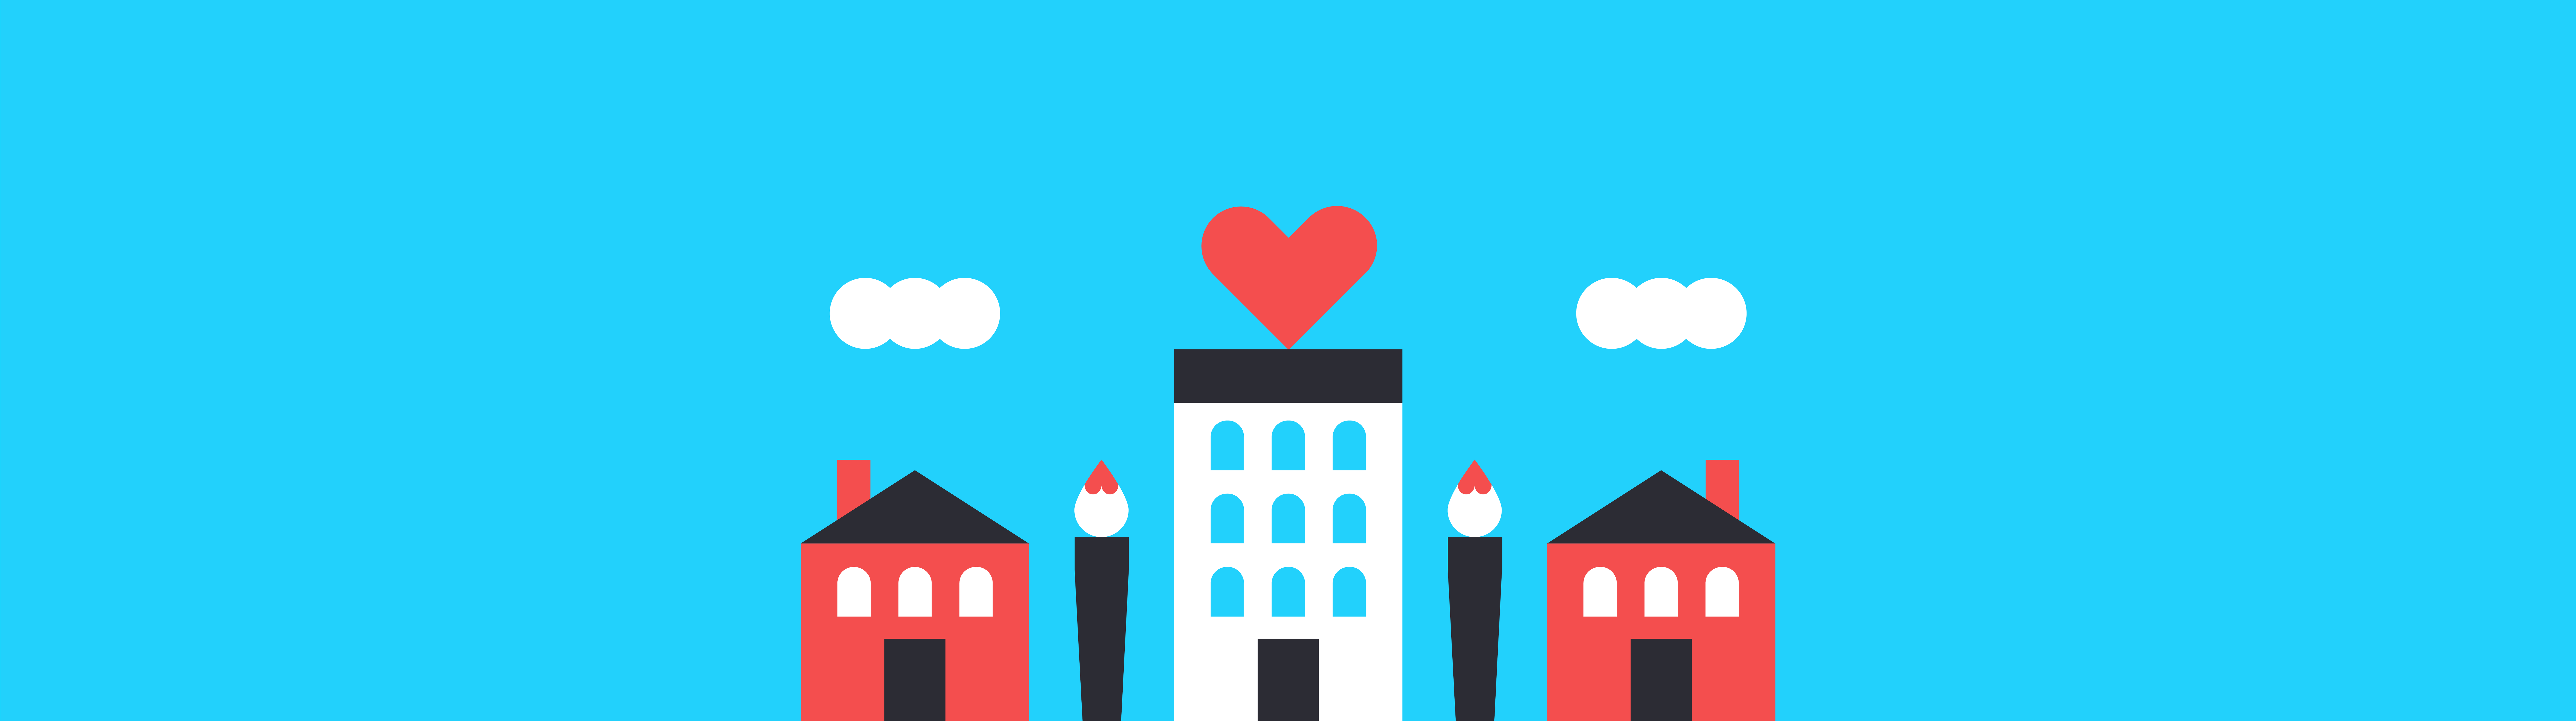 Centers graphic showing buildings with hearts, paintbrush posts, and clouds.